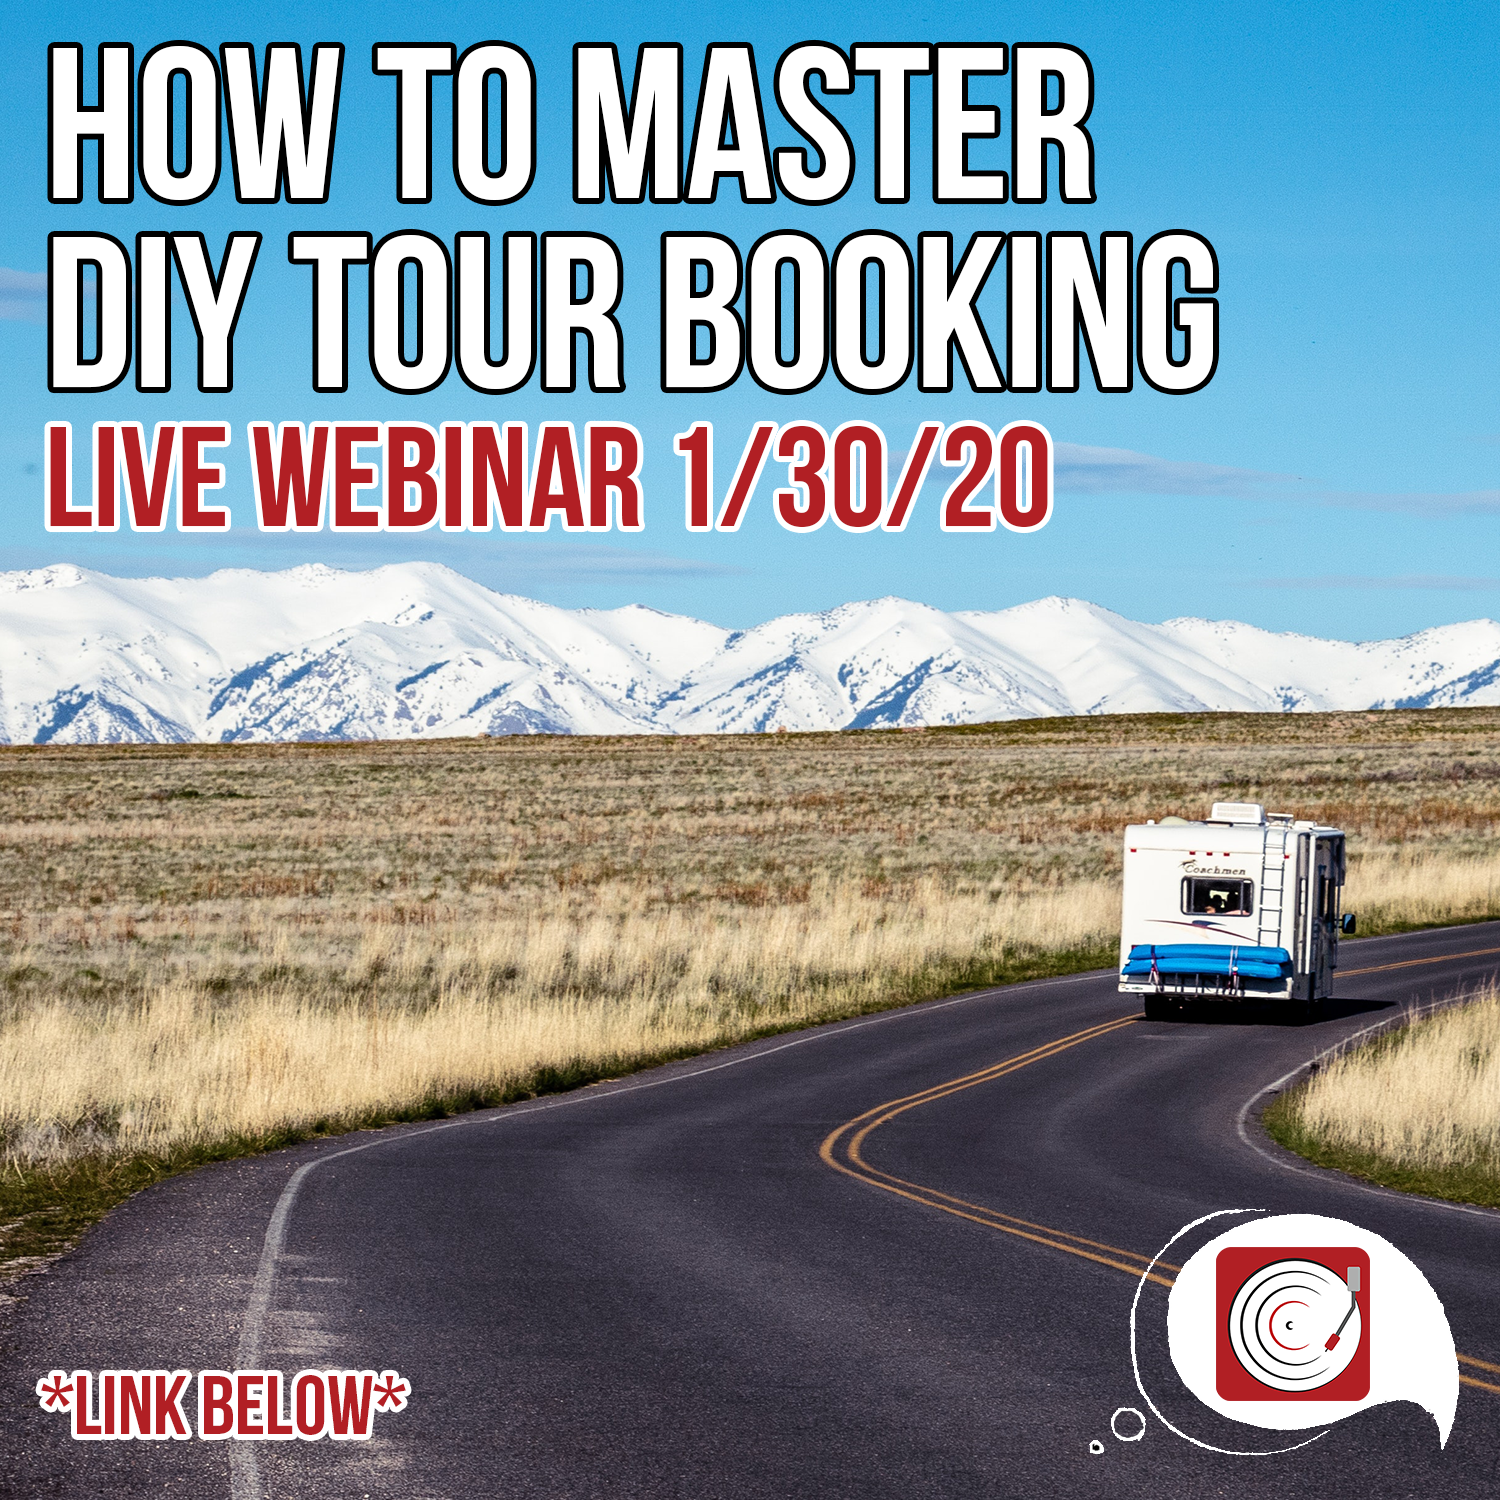 DIY Tour Booking Webinar